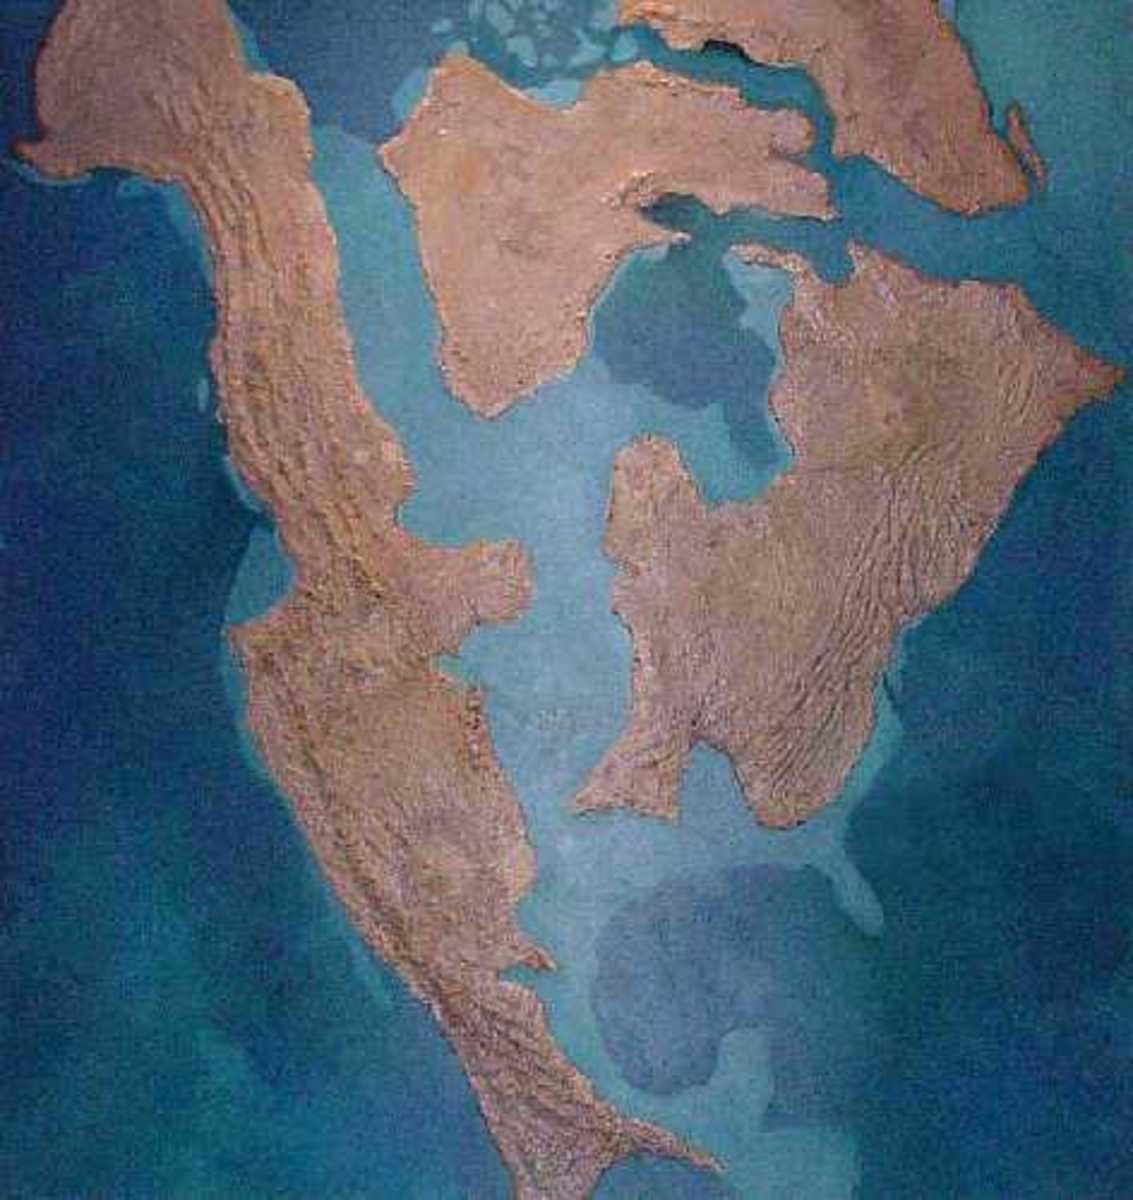 North America's Inland Sea